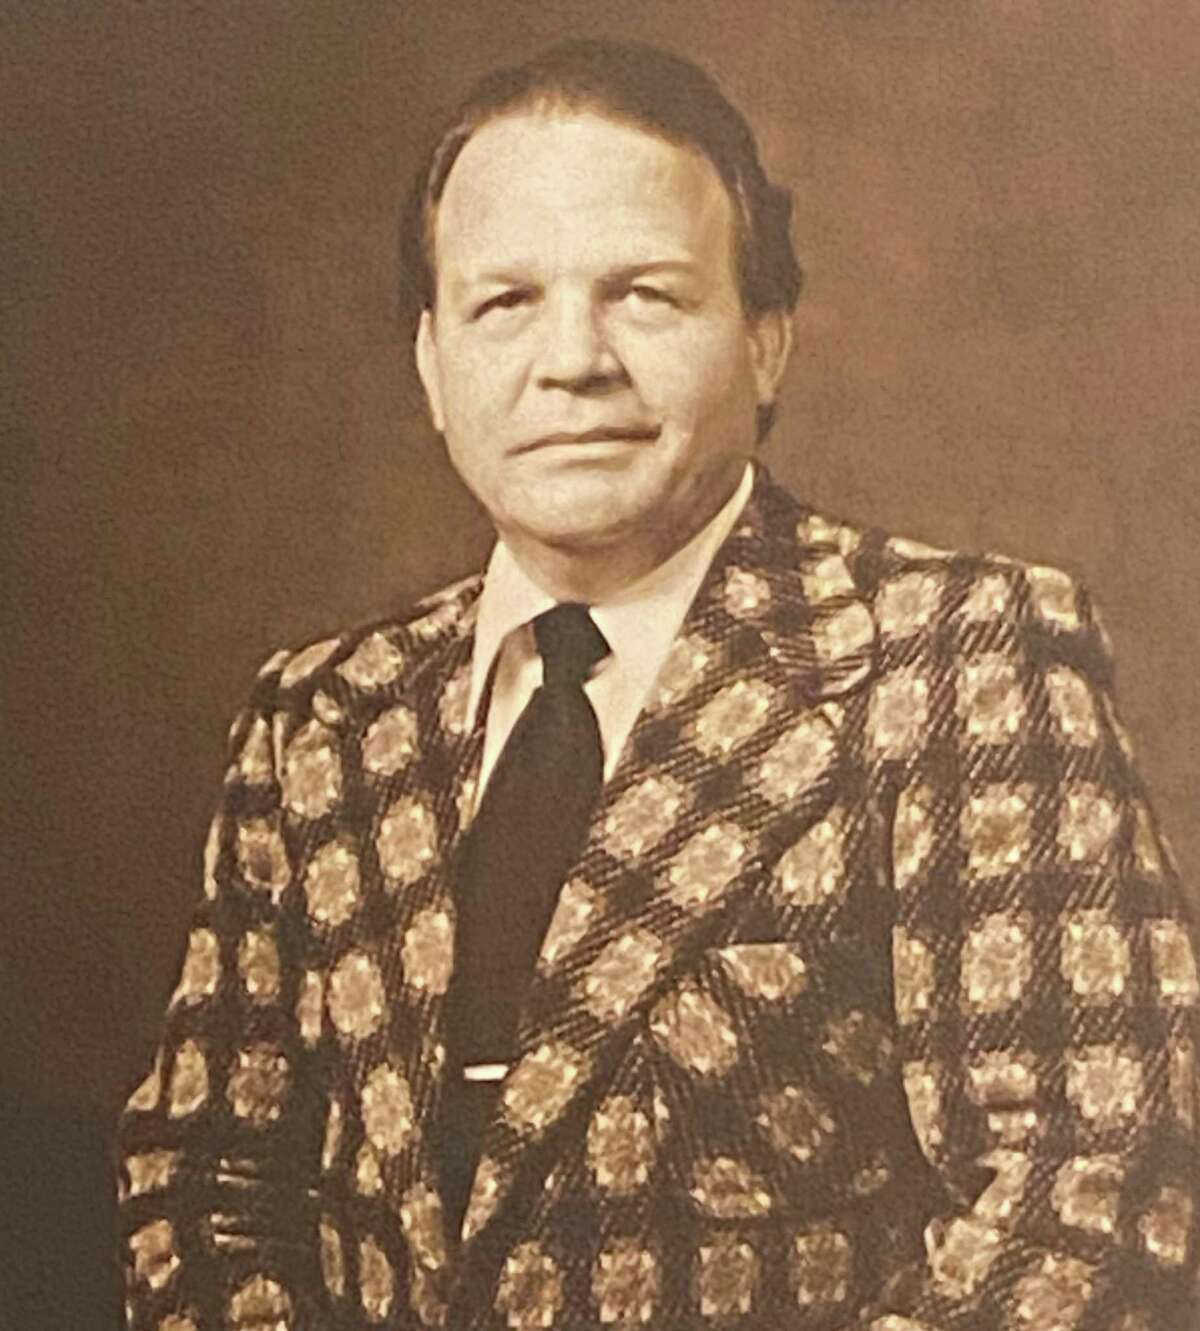 Paul O'Farrell, the first mayor of Friendswood, died Thursday Sept. 24, 2020, city officials said.